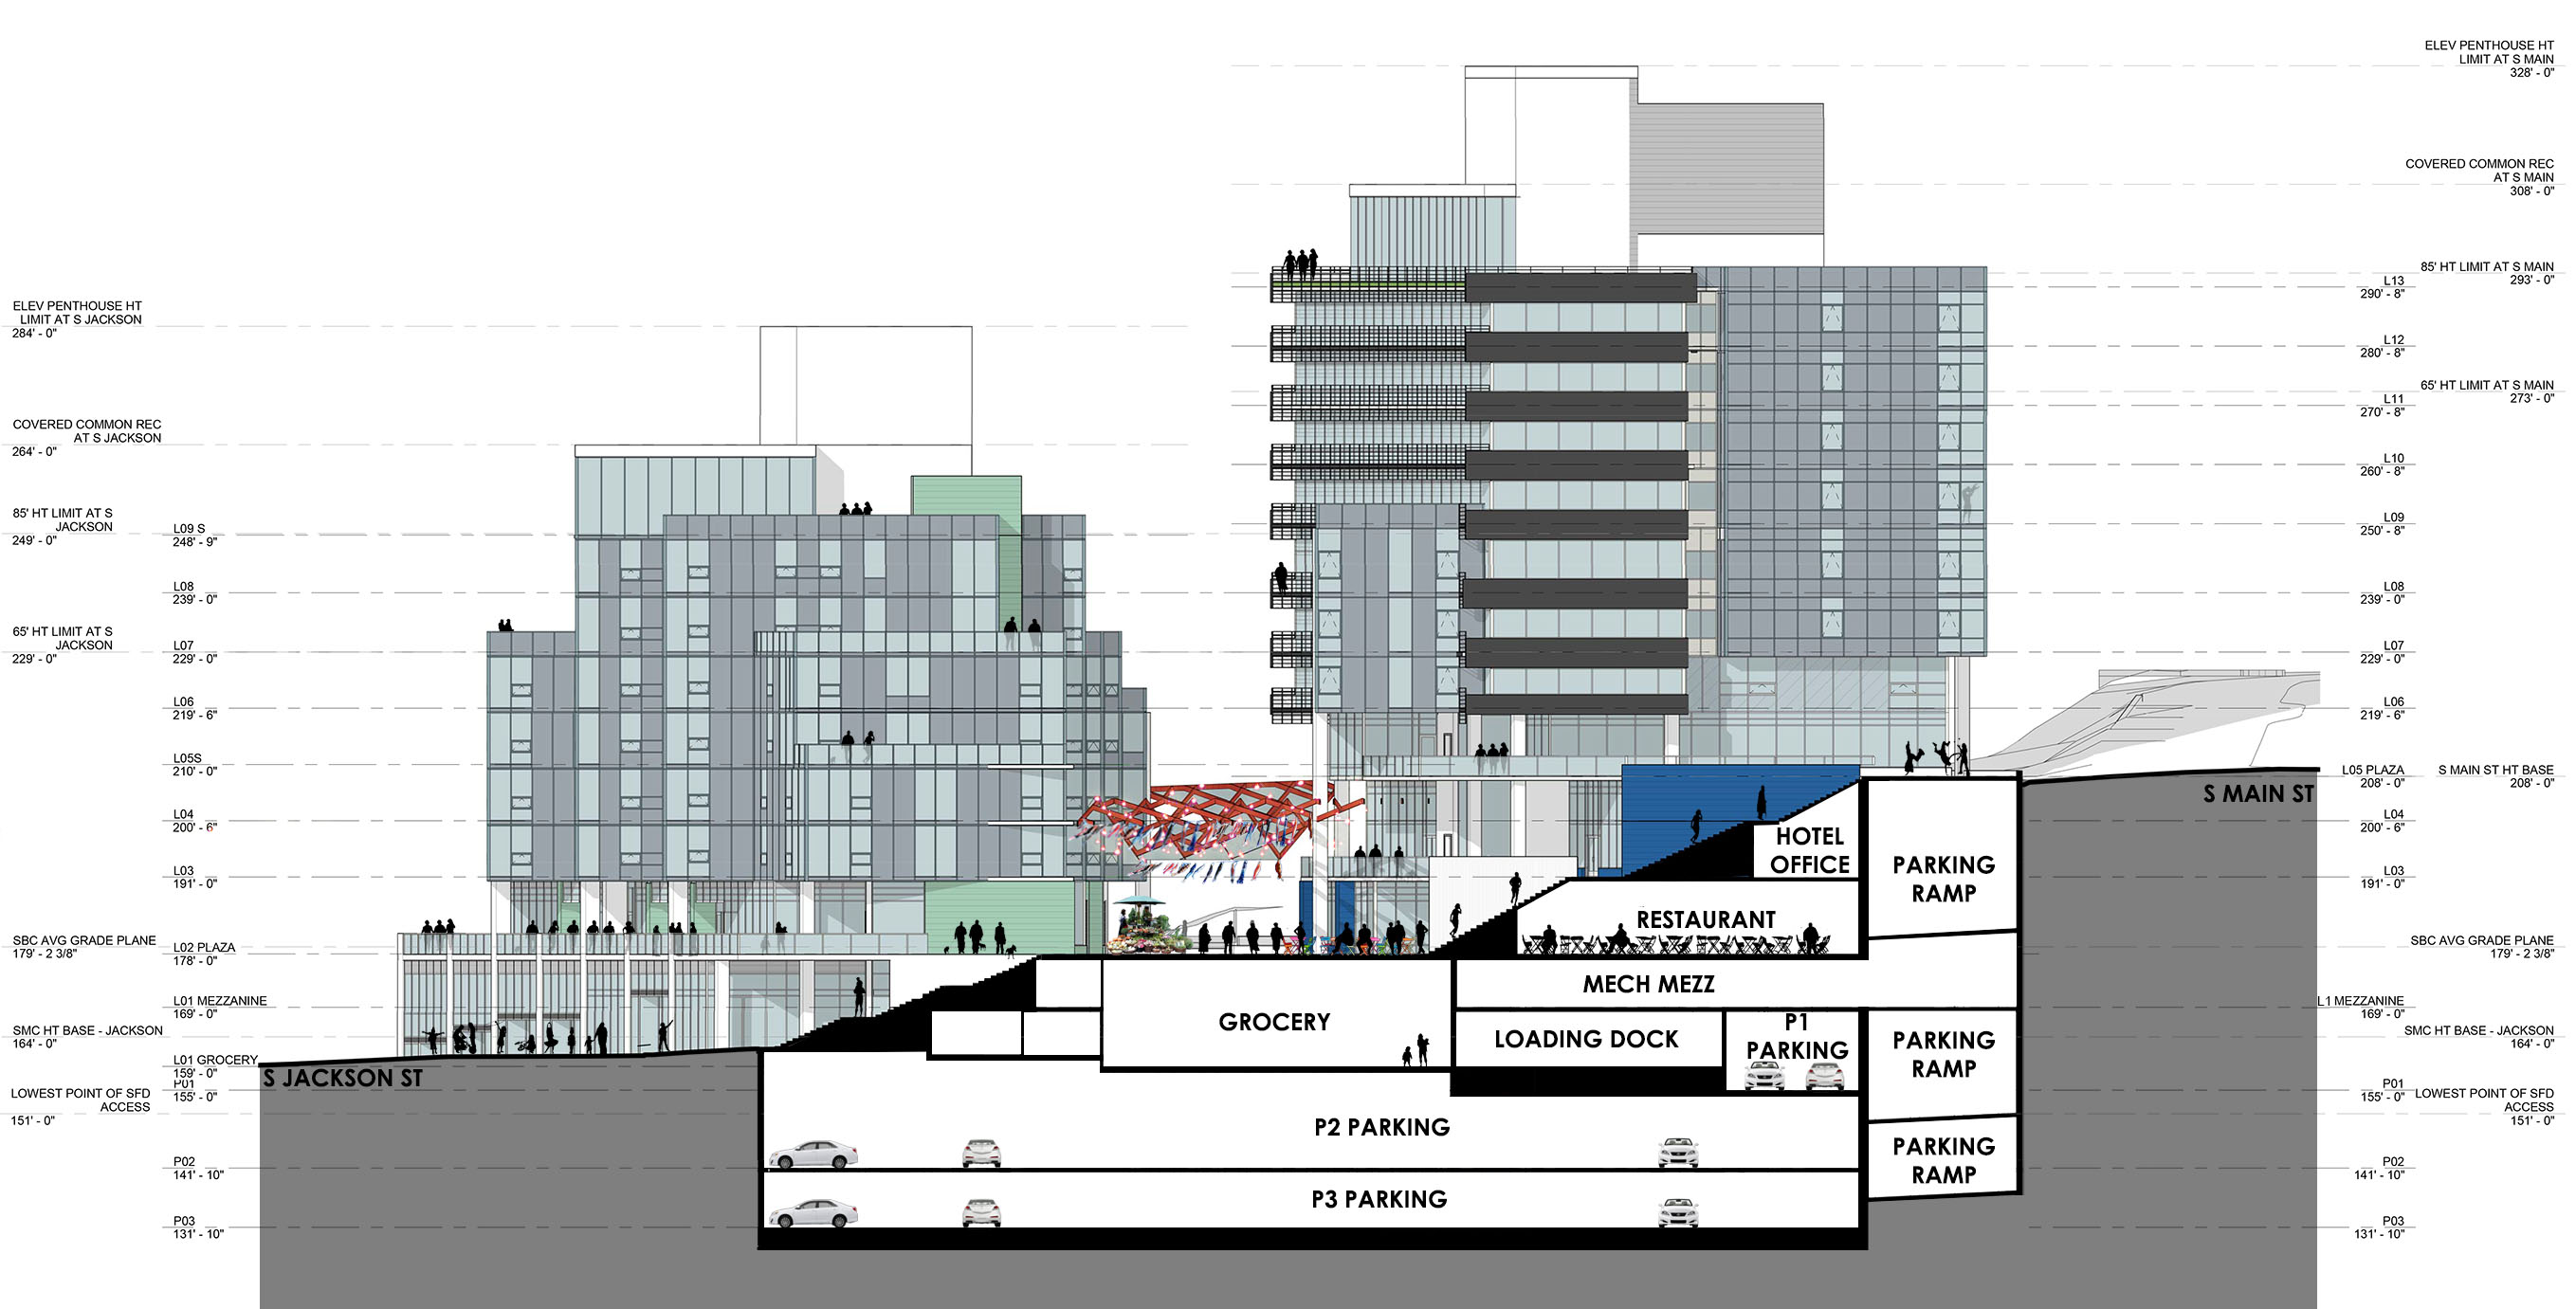 P:Active Projects15016DesignRevit15016-12TH & JACKSON - R16